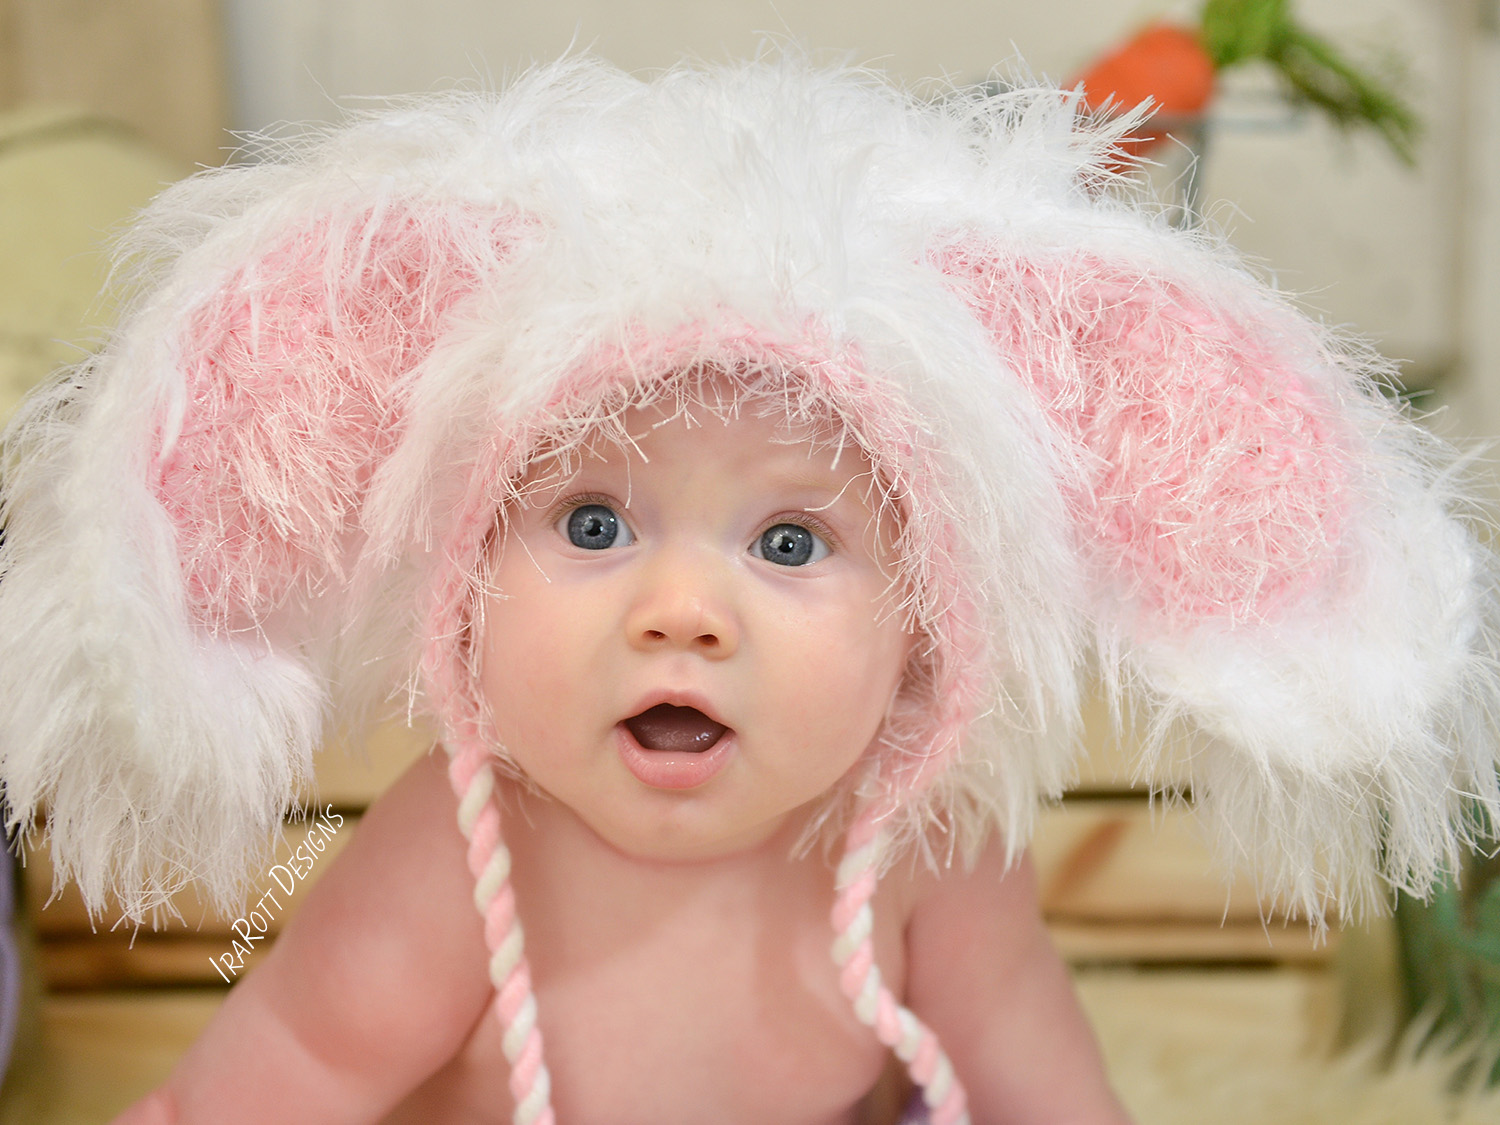 Babies super soft white bunny hat with pink inner ears